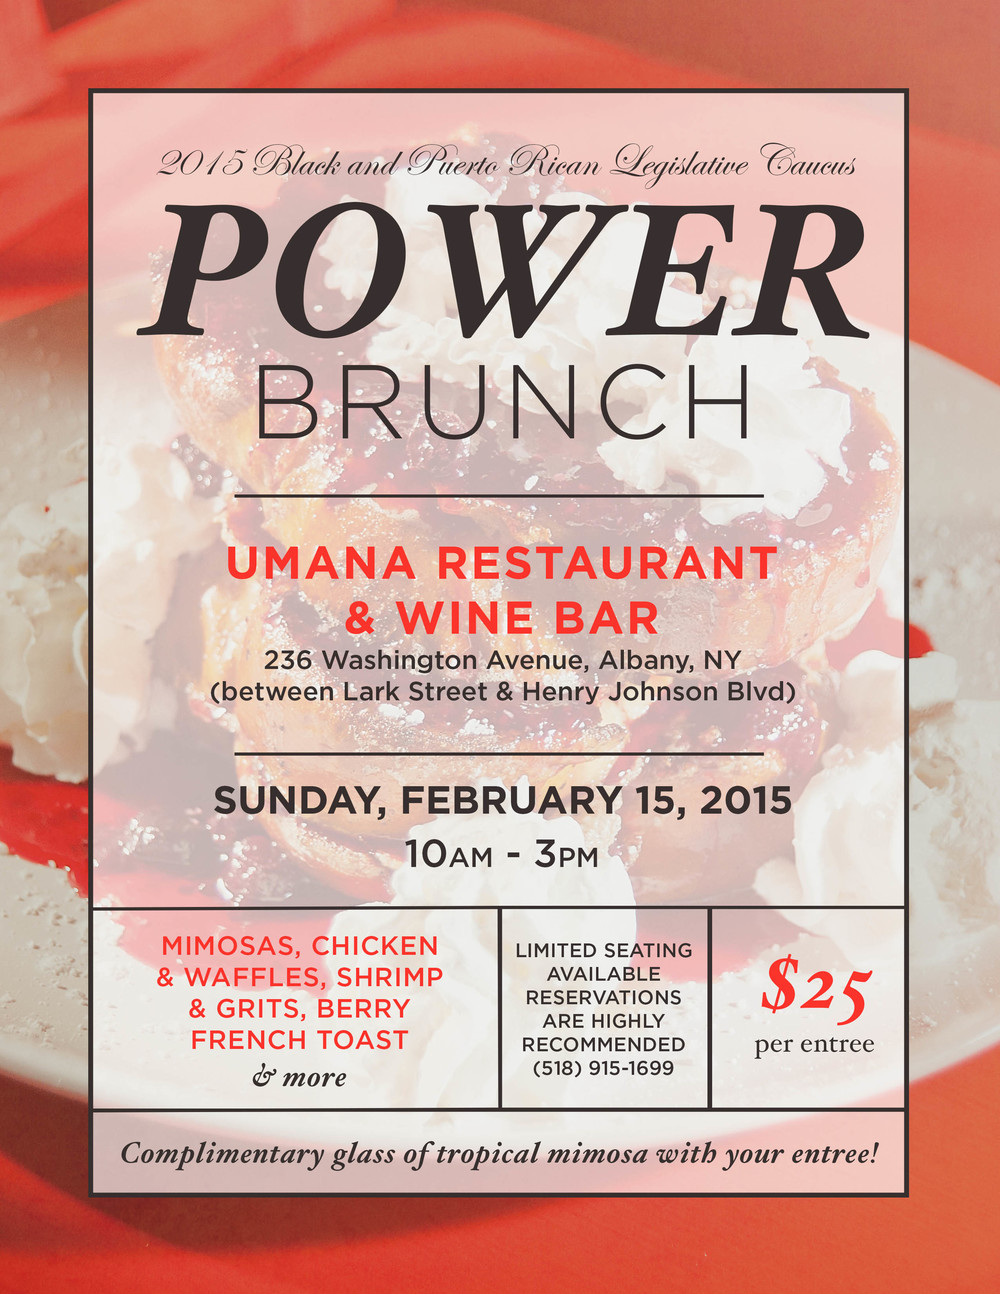 Caucus brunch flyer.jpg